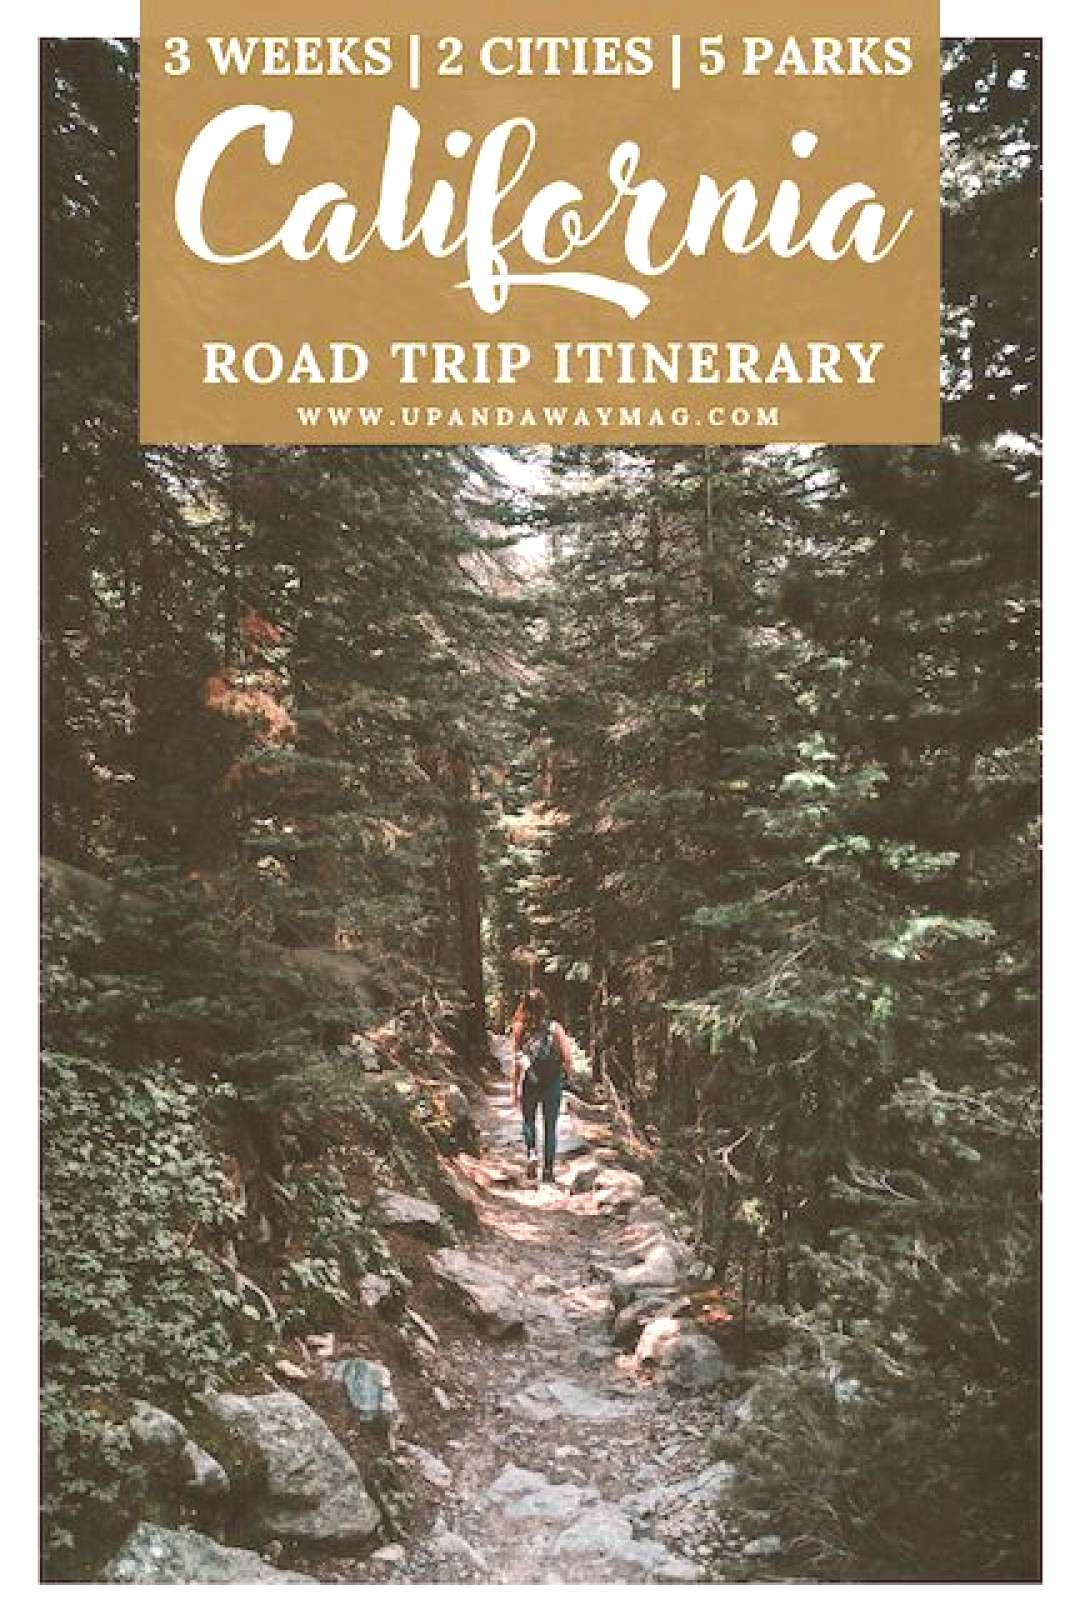 California The Ultimate 2 to 3 Week National Park Road Trip Itinerary - Up and Away Adventure Trav